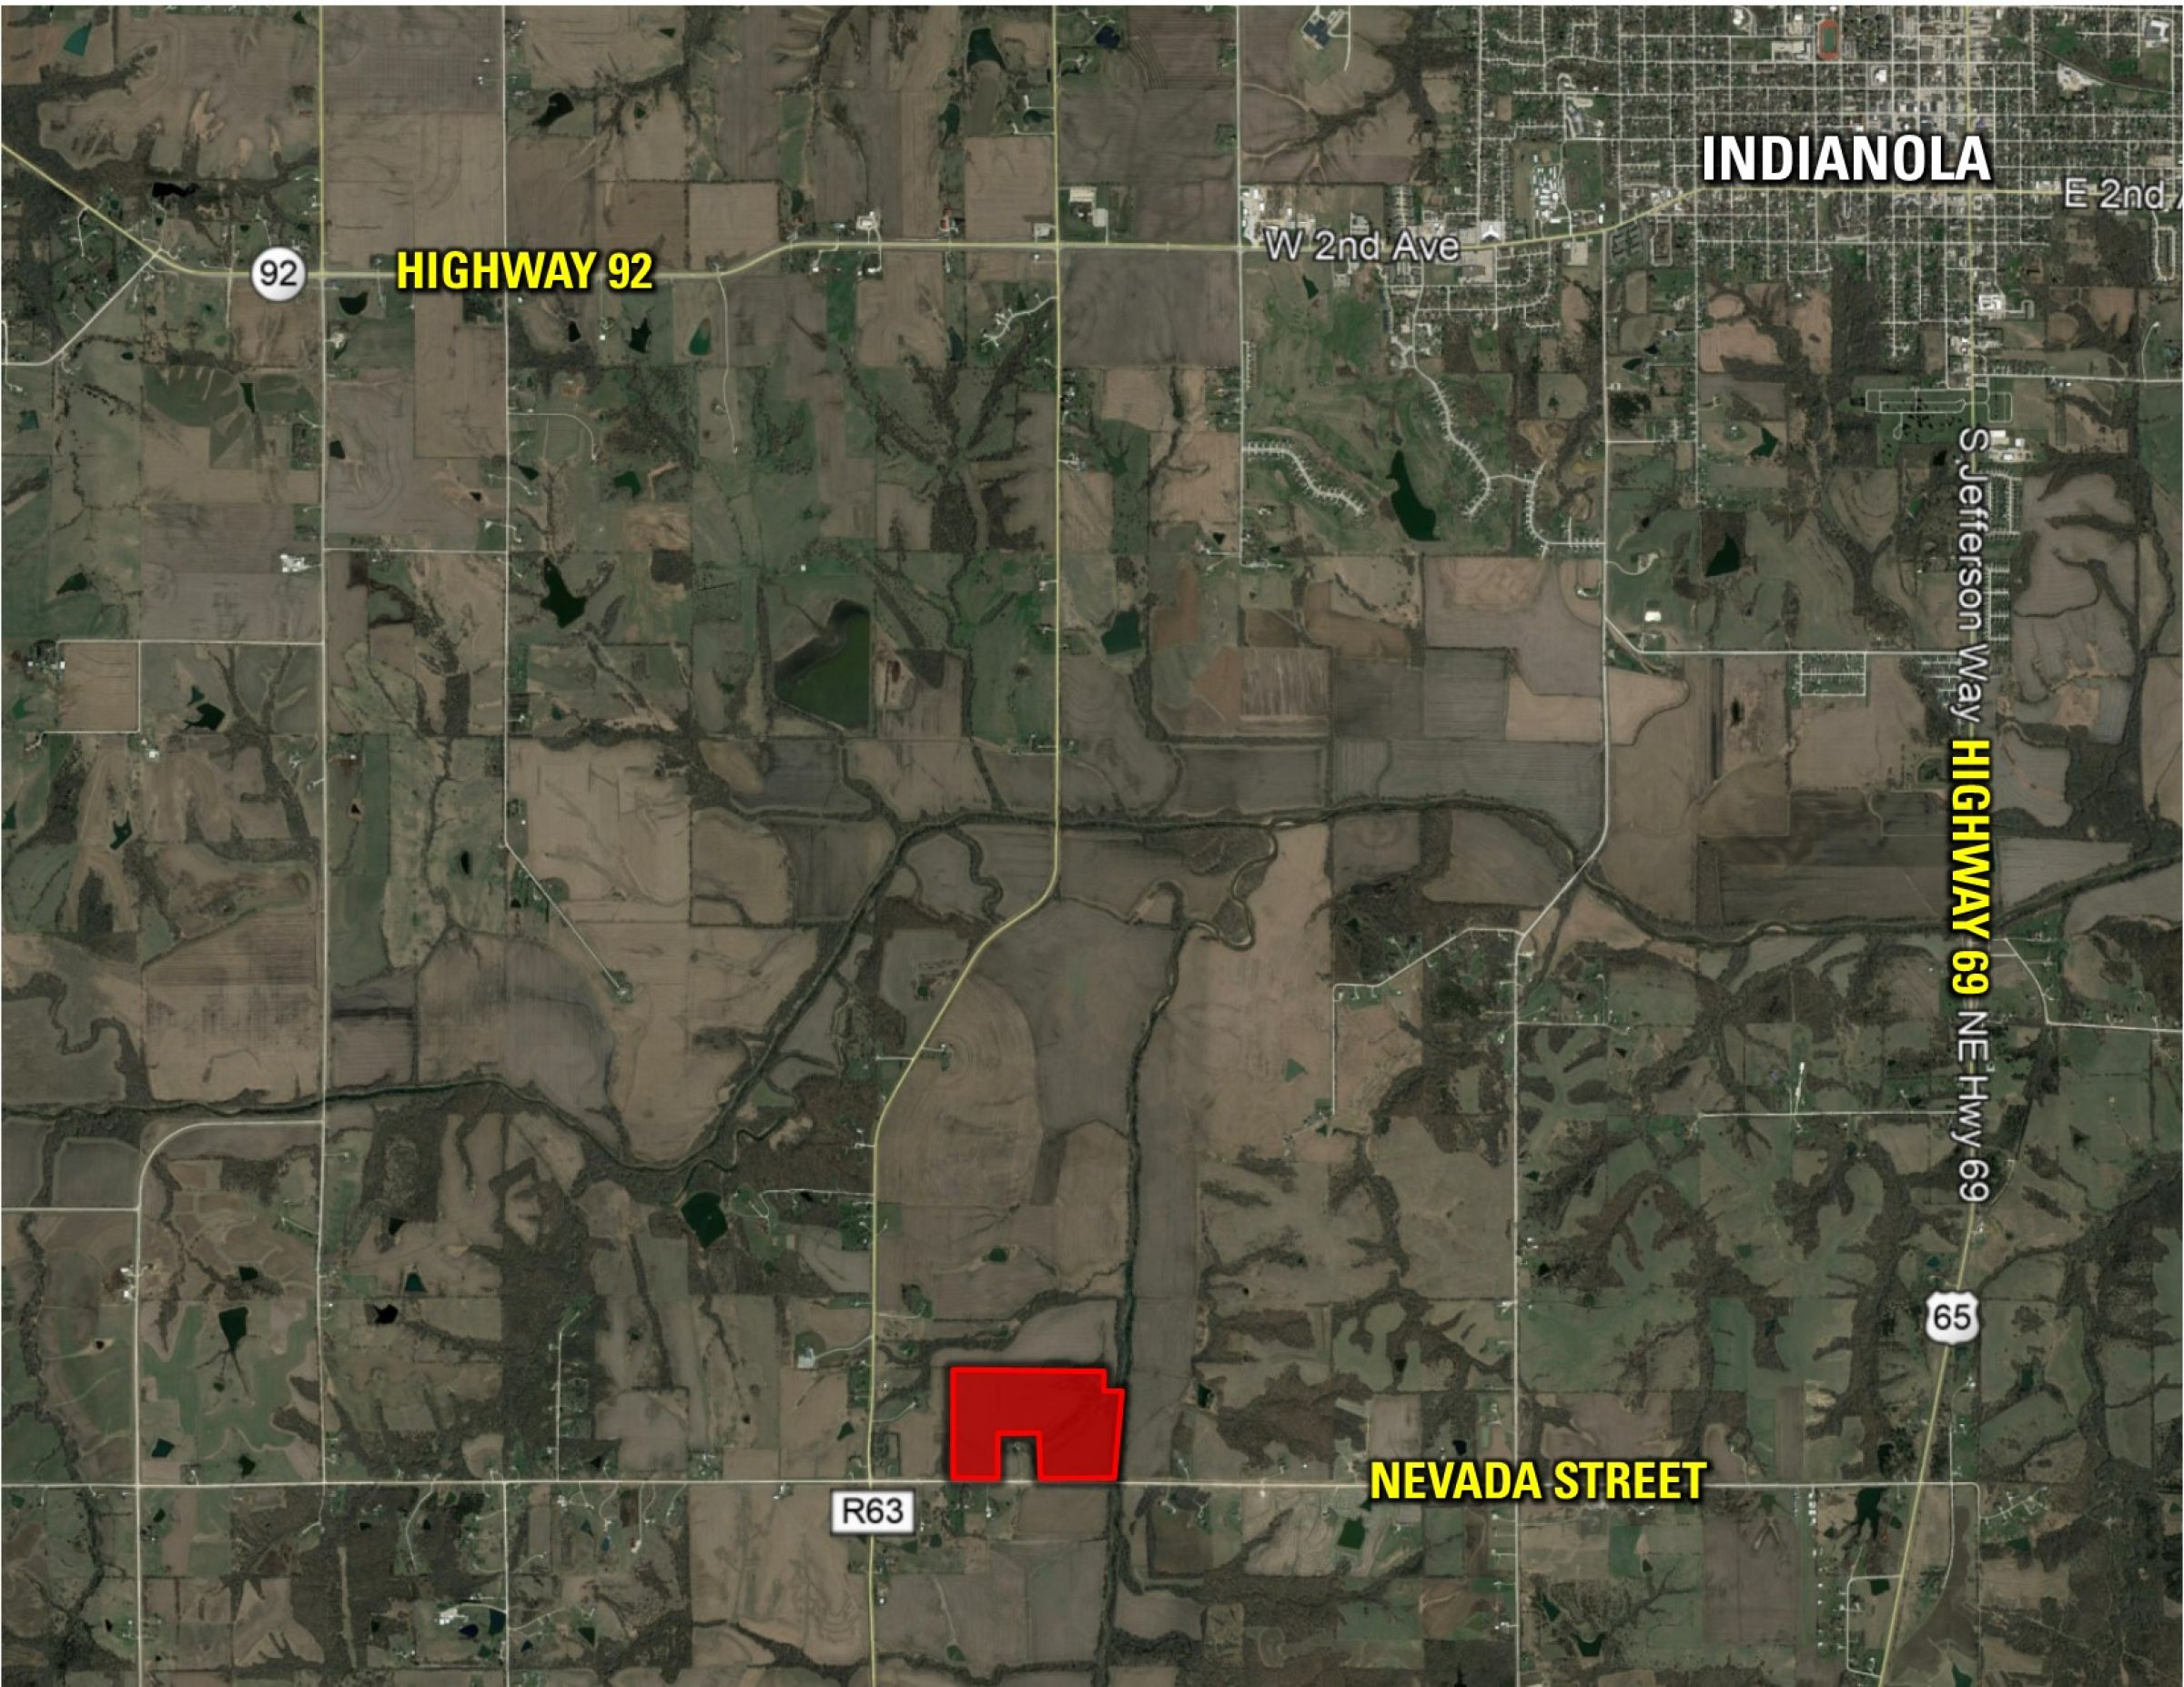 Peoples Company land for sale-Warren County Iowa-14341-nevada-st-indianola-50125.jpg